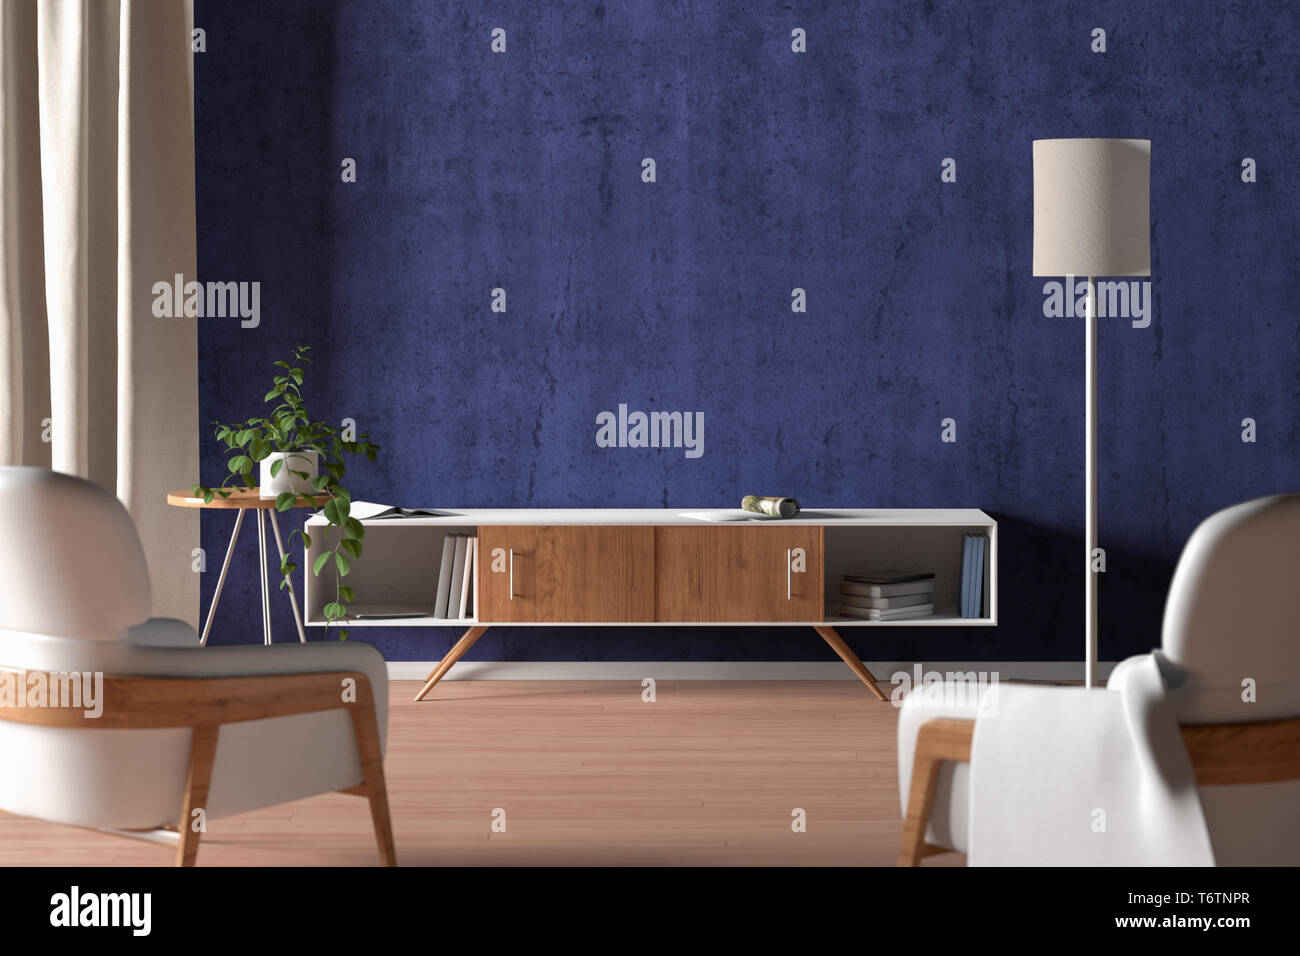 Tv Cabinet In Modern Living Room With Blank Blue Wall